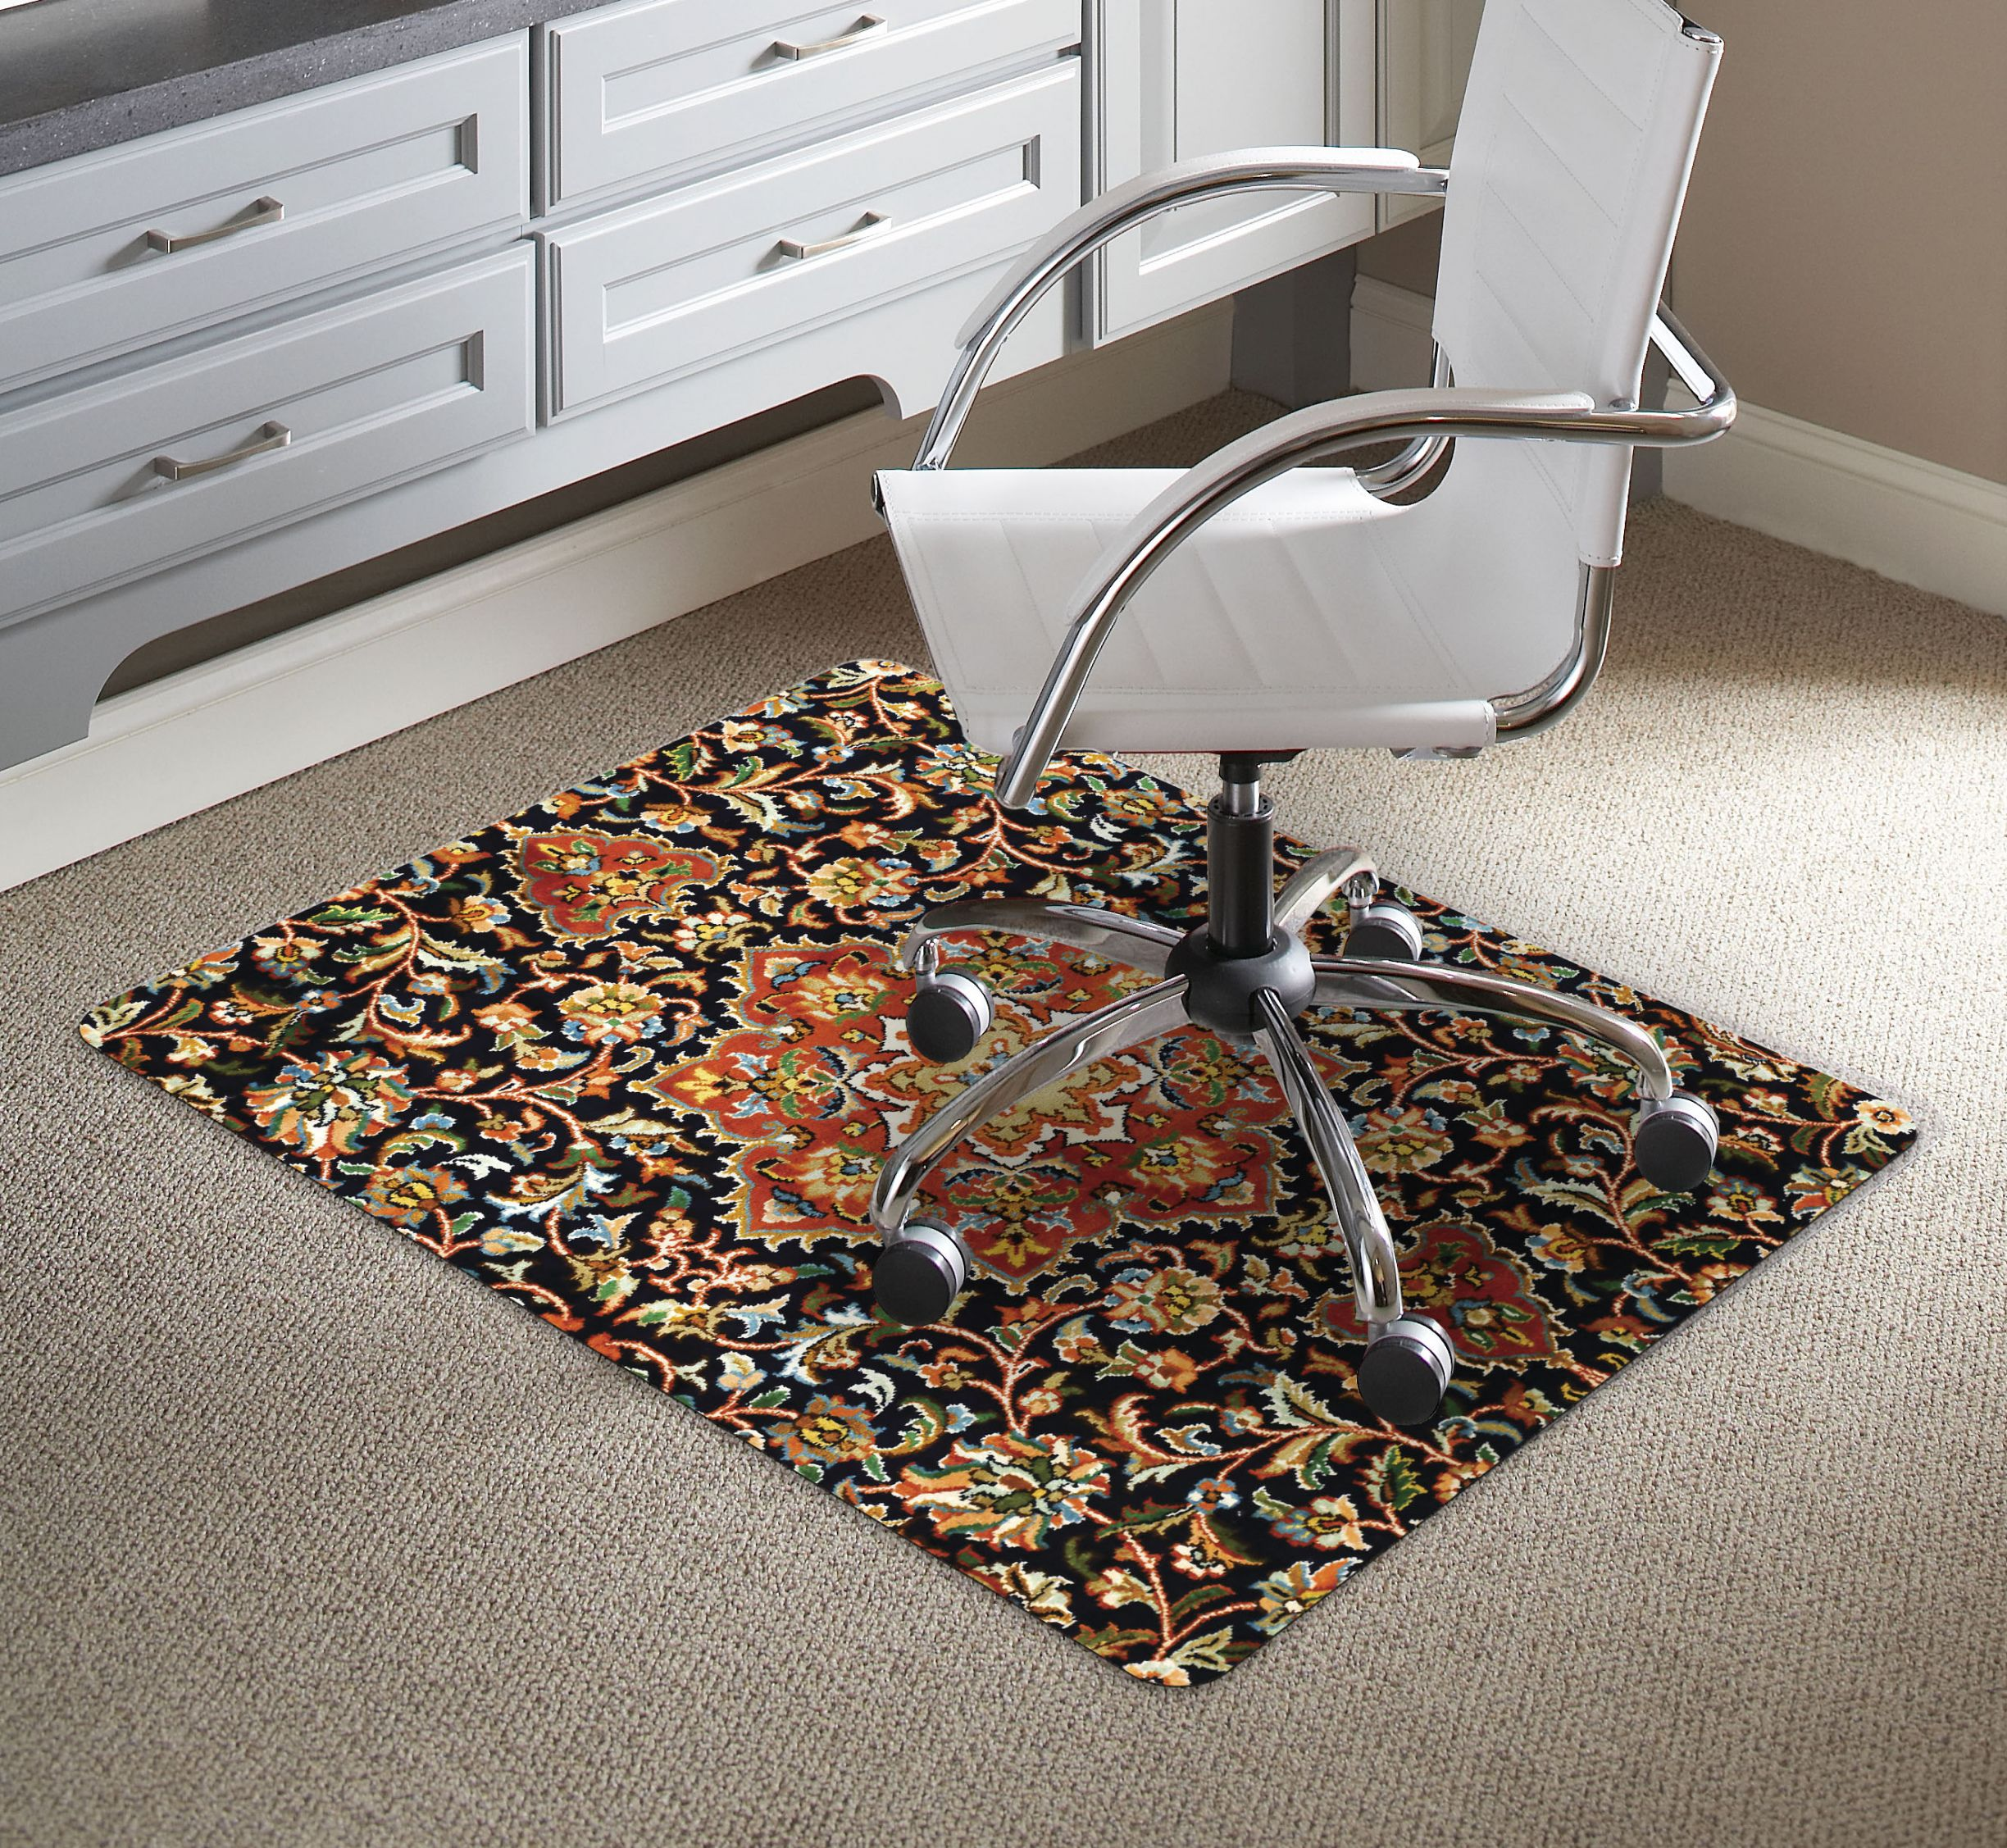 Desk Chair Mat Carpet   Best Ergonomic Desk Chair Check More At Http://